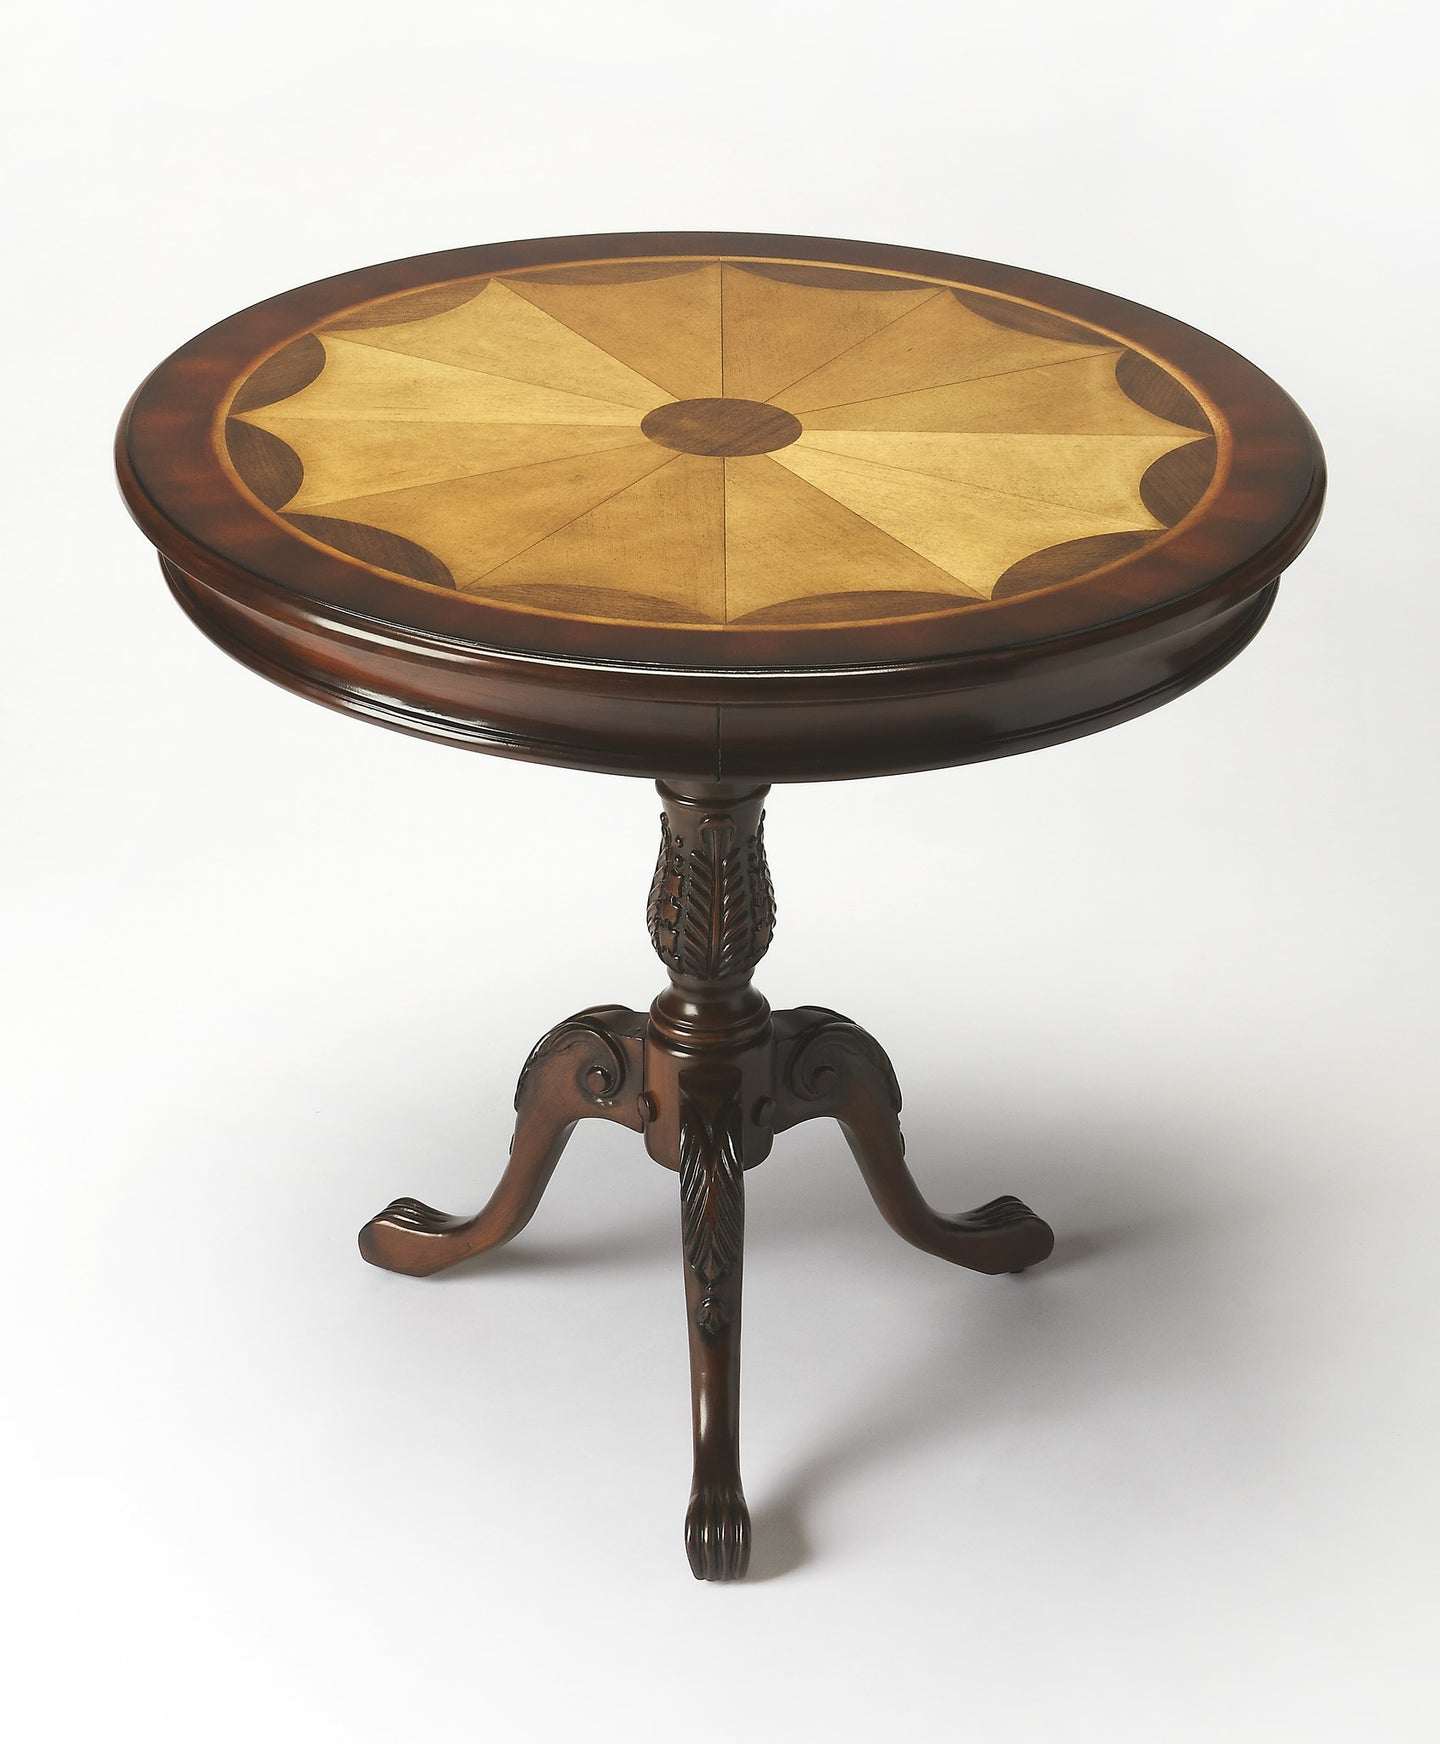 Carissa Plantation Cherry Round Pedestal Table by Butler Specialty Company 0533024